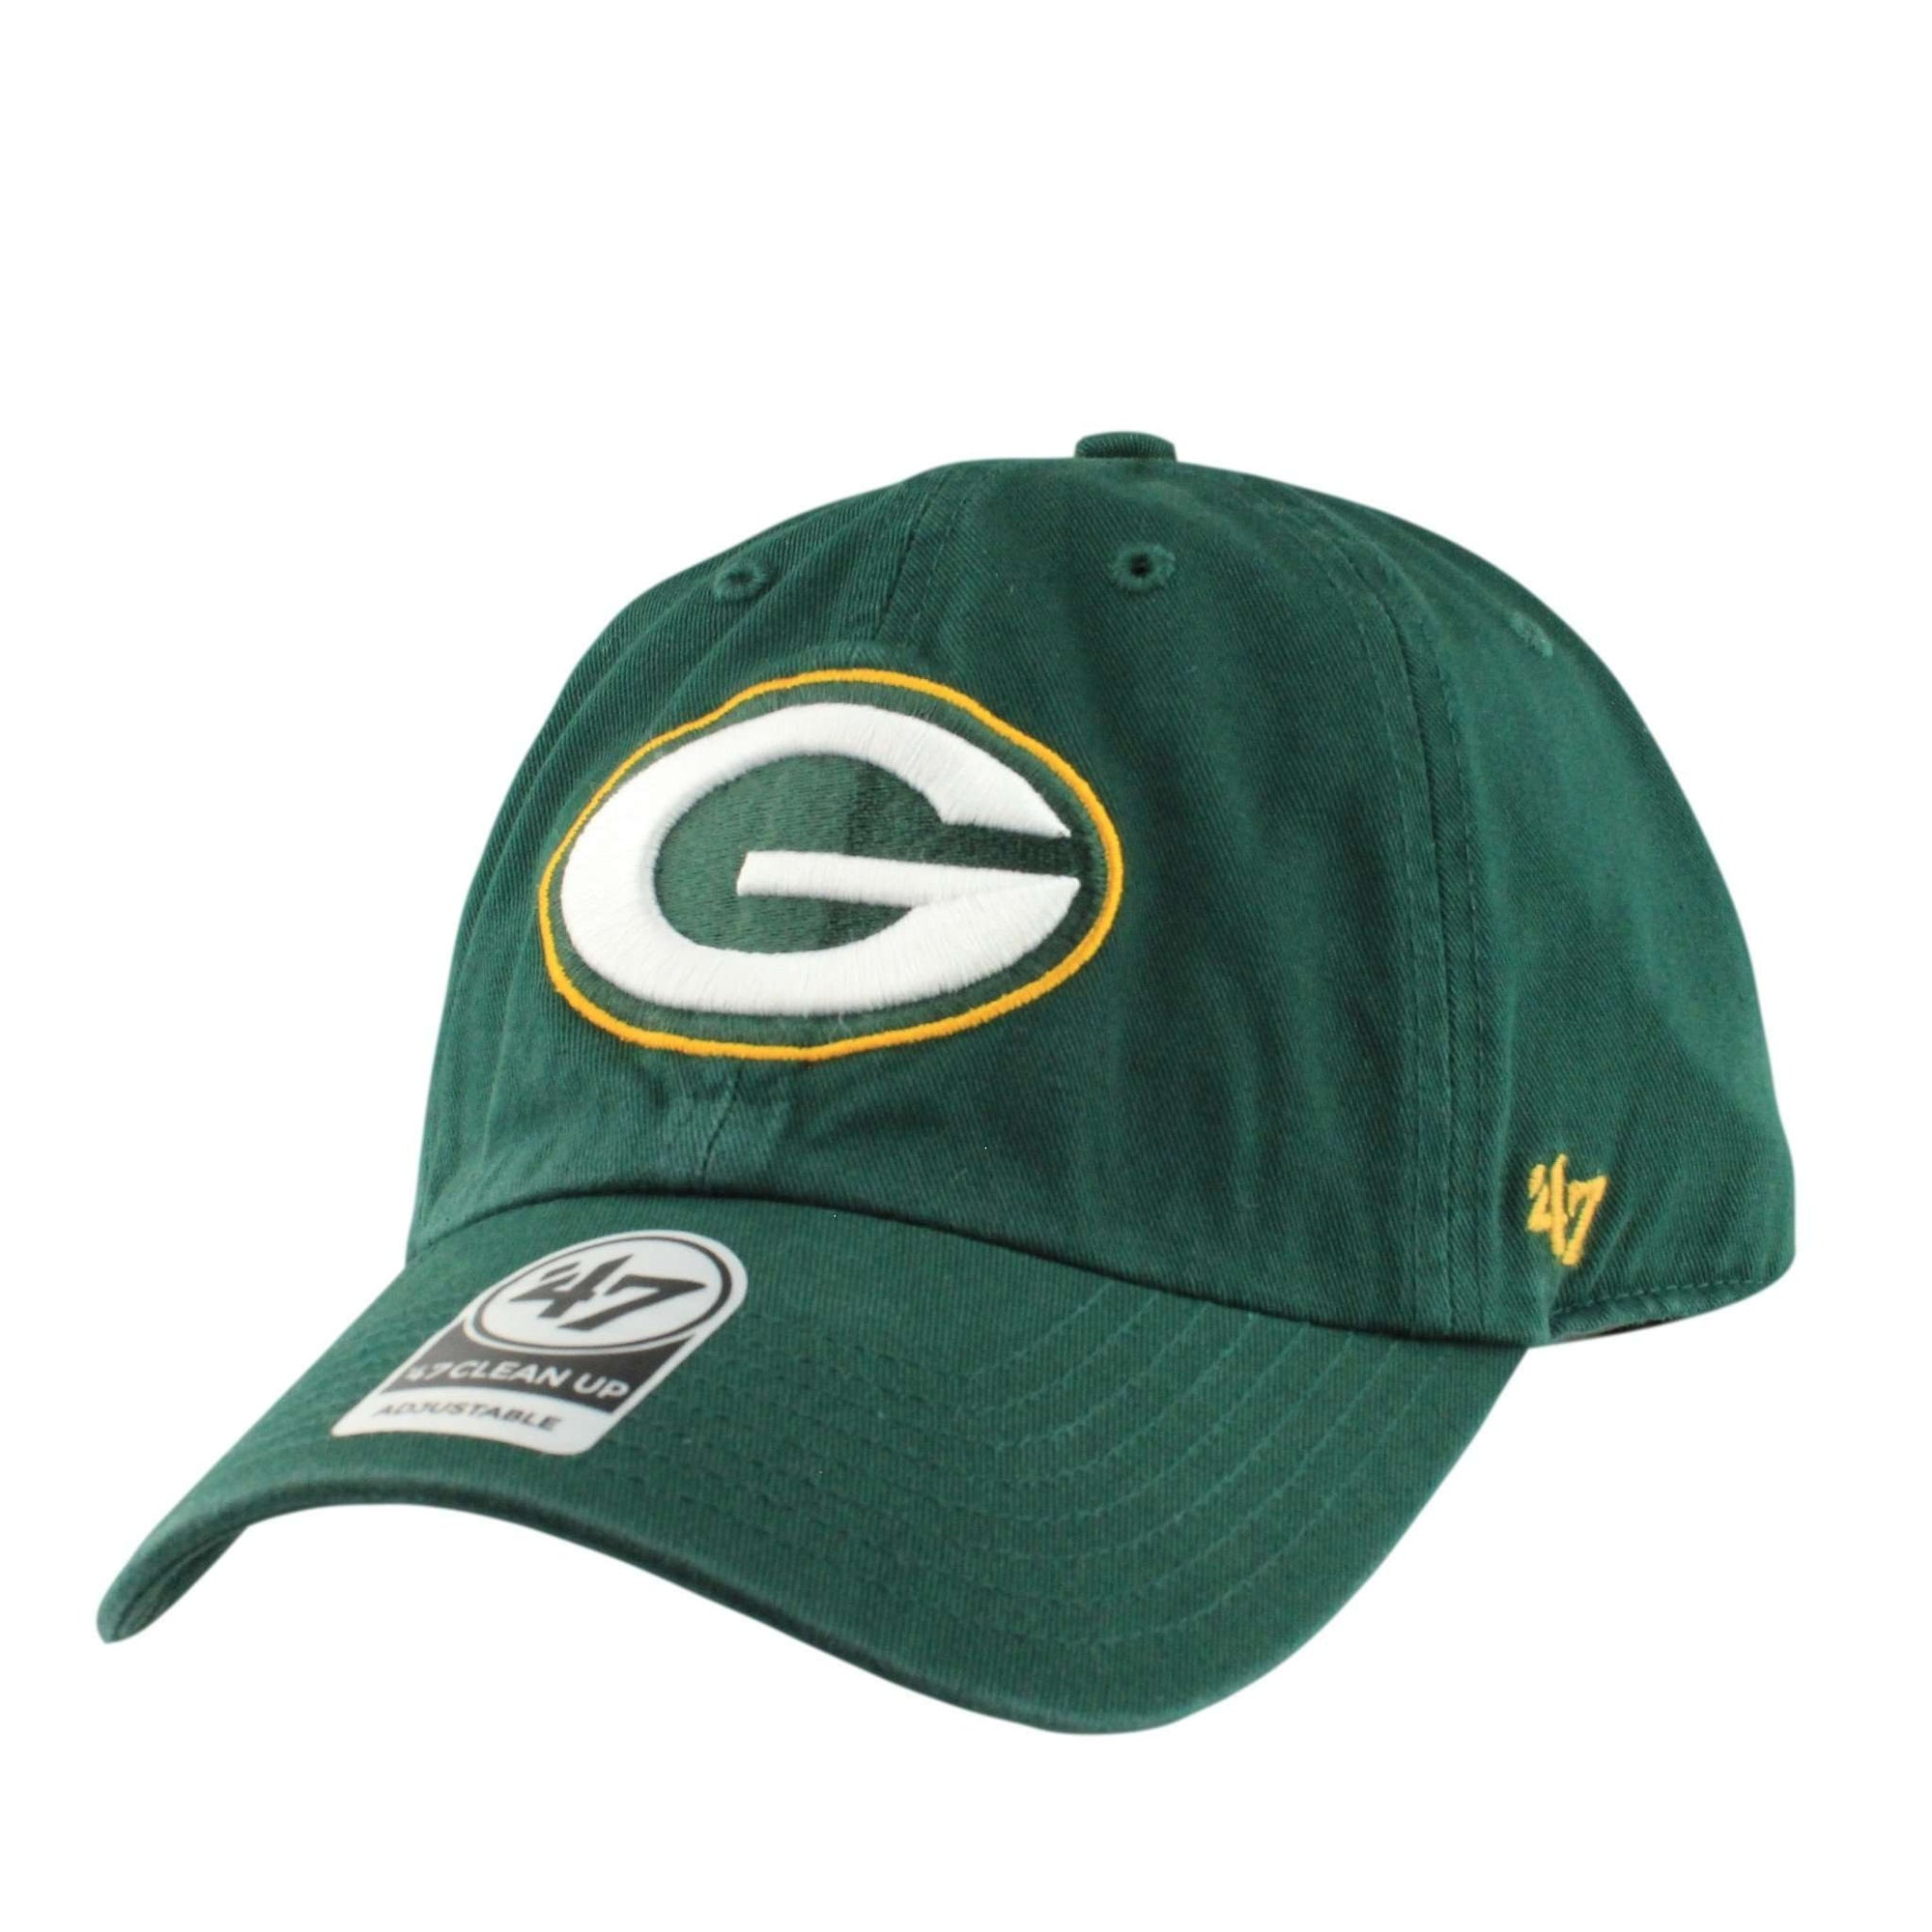 15d6cfff2  47 Green Bay Packers Clean Up Green Green Slouch Strapback.